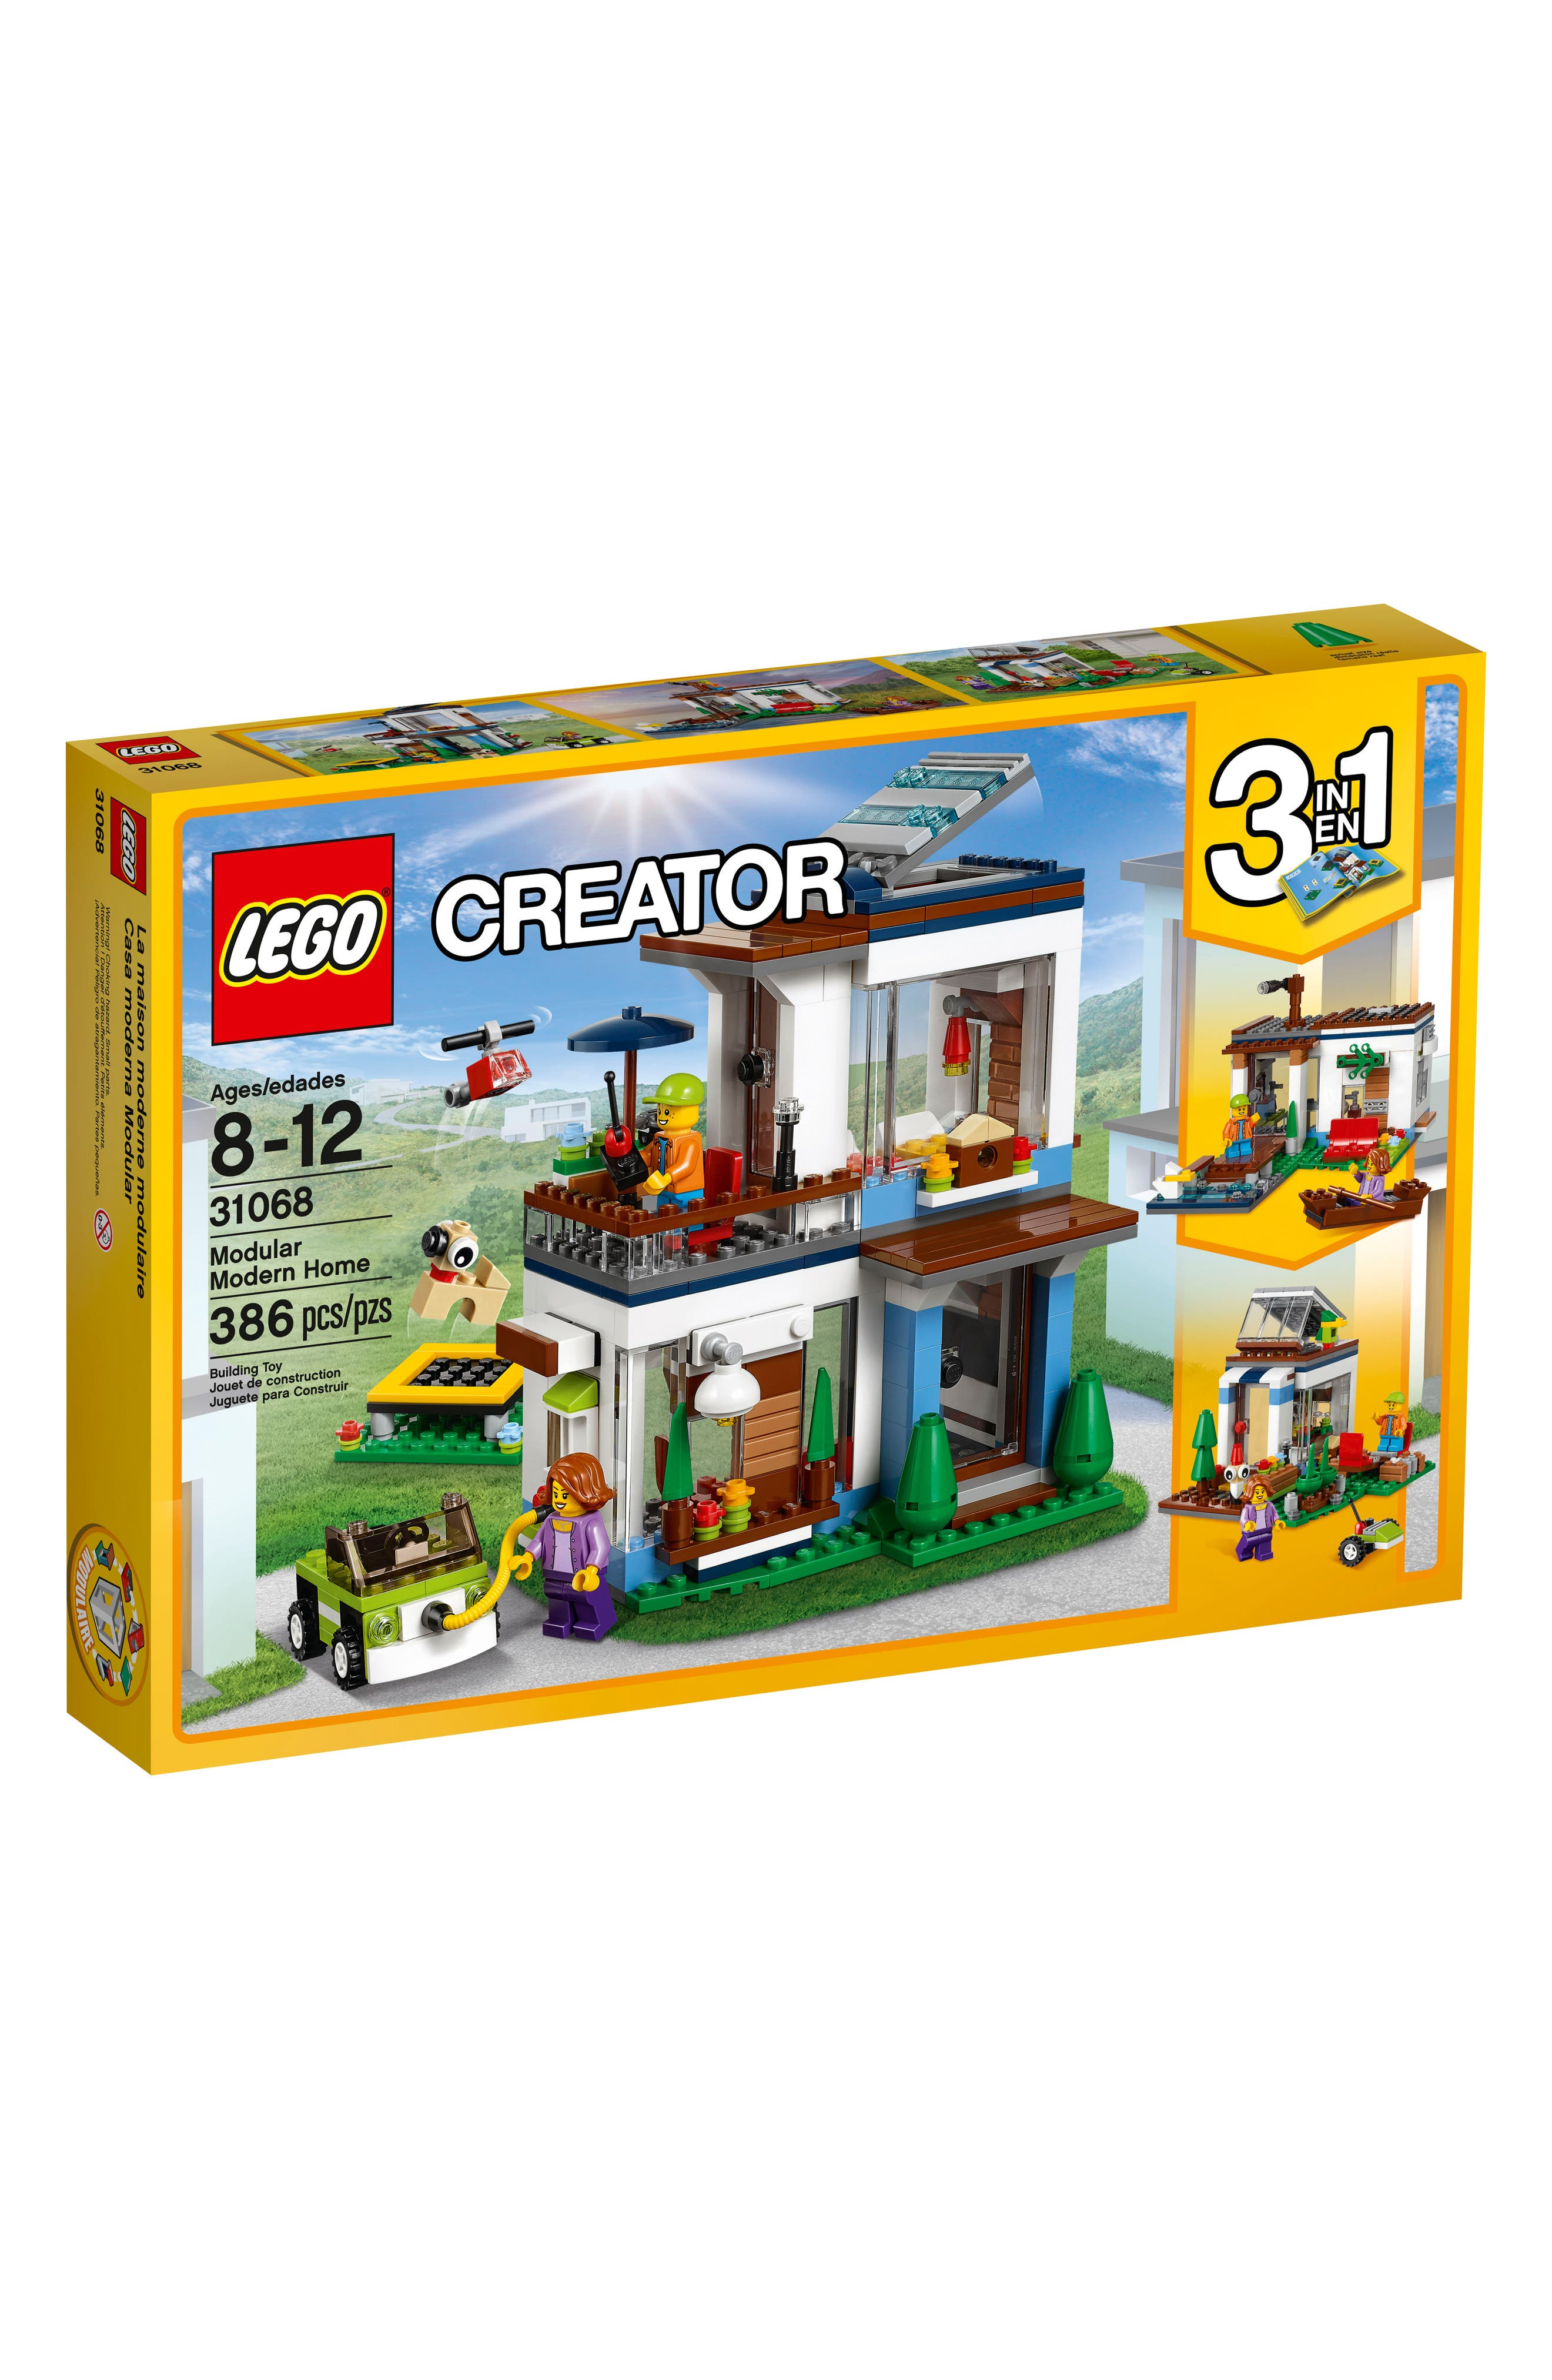 Creator 3-in-1 Modular Modern Home Play Set - 31068,                             Main thumbnail 1, color,                             Multi